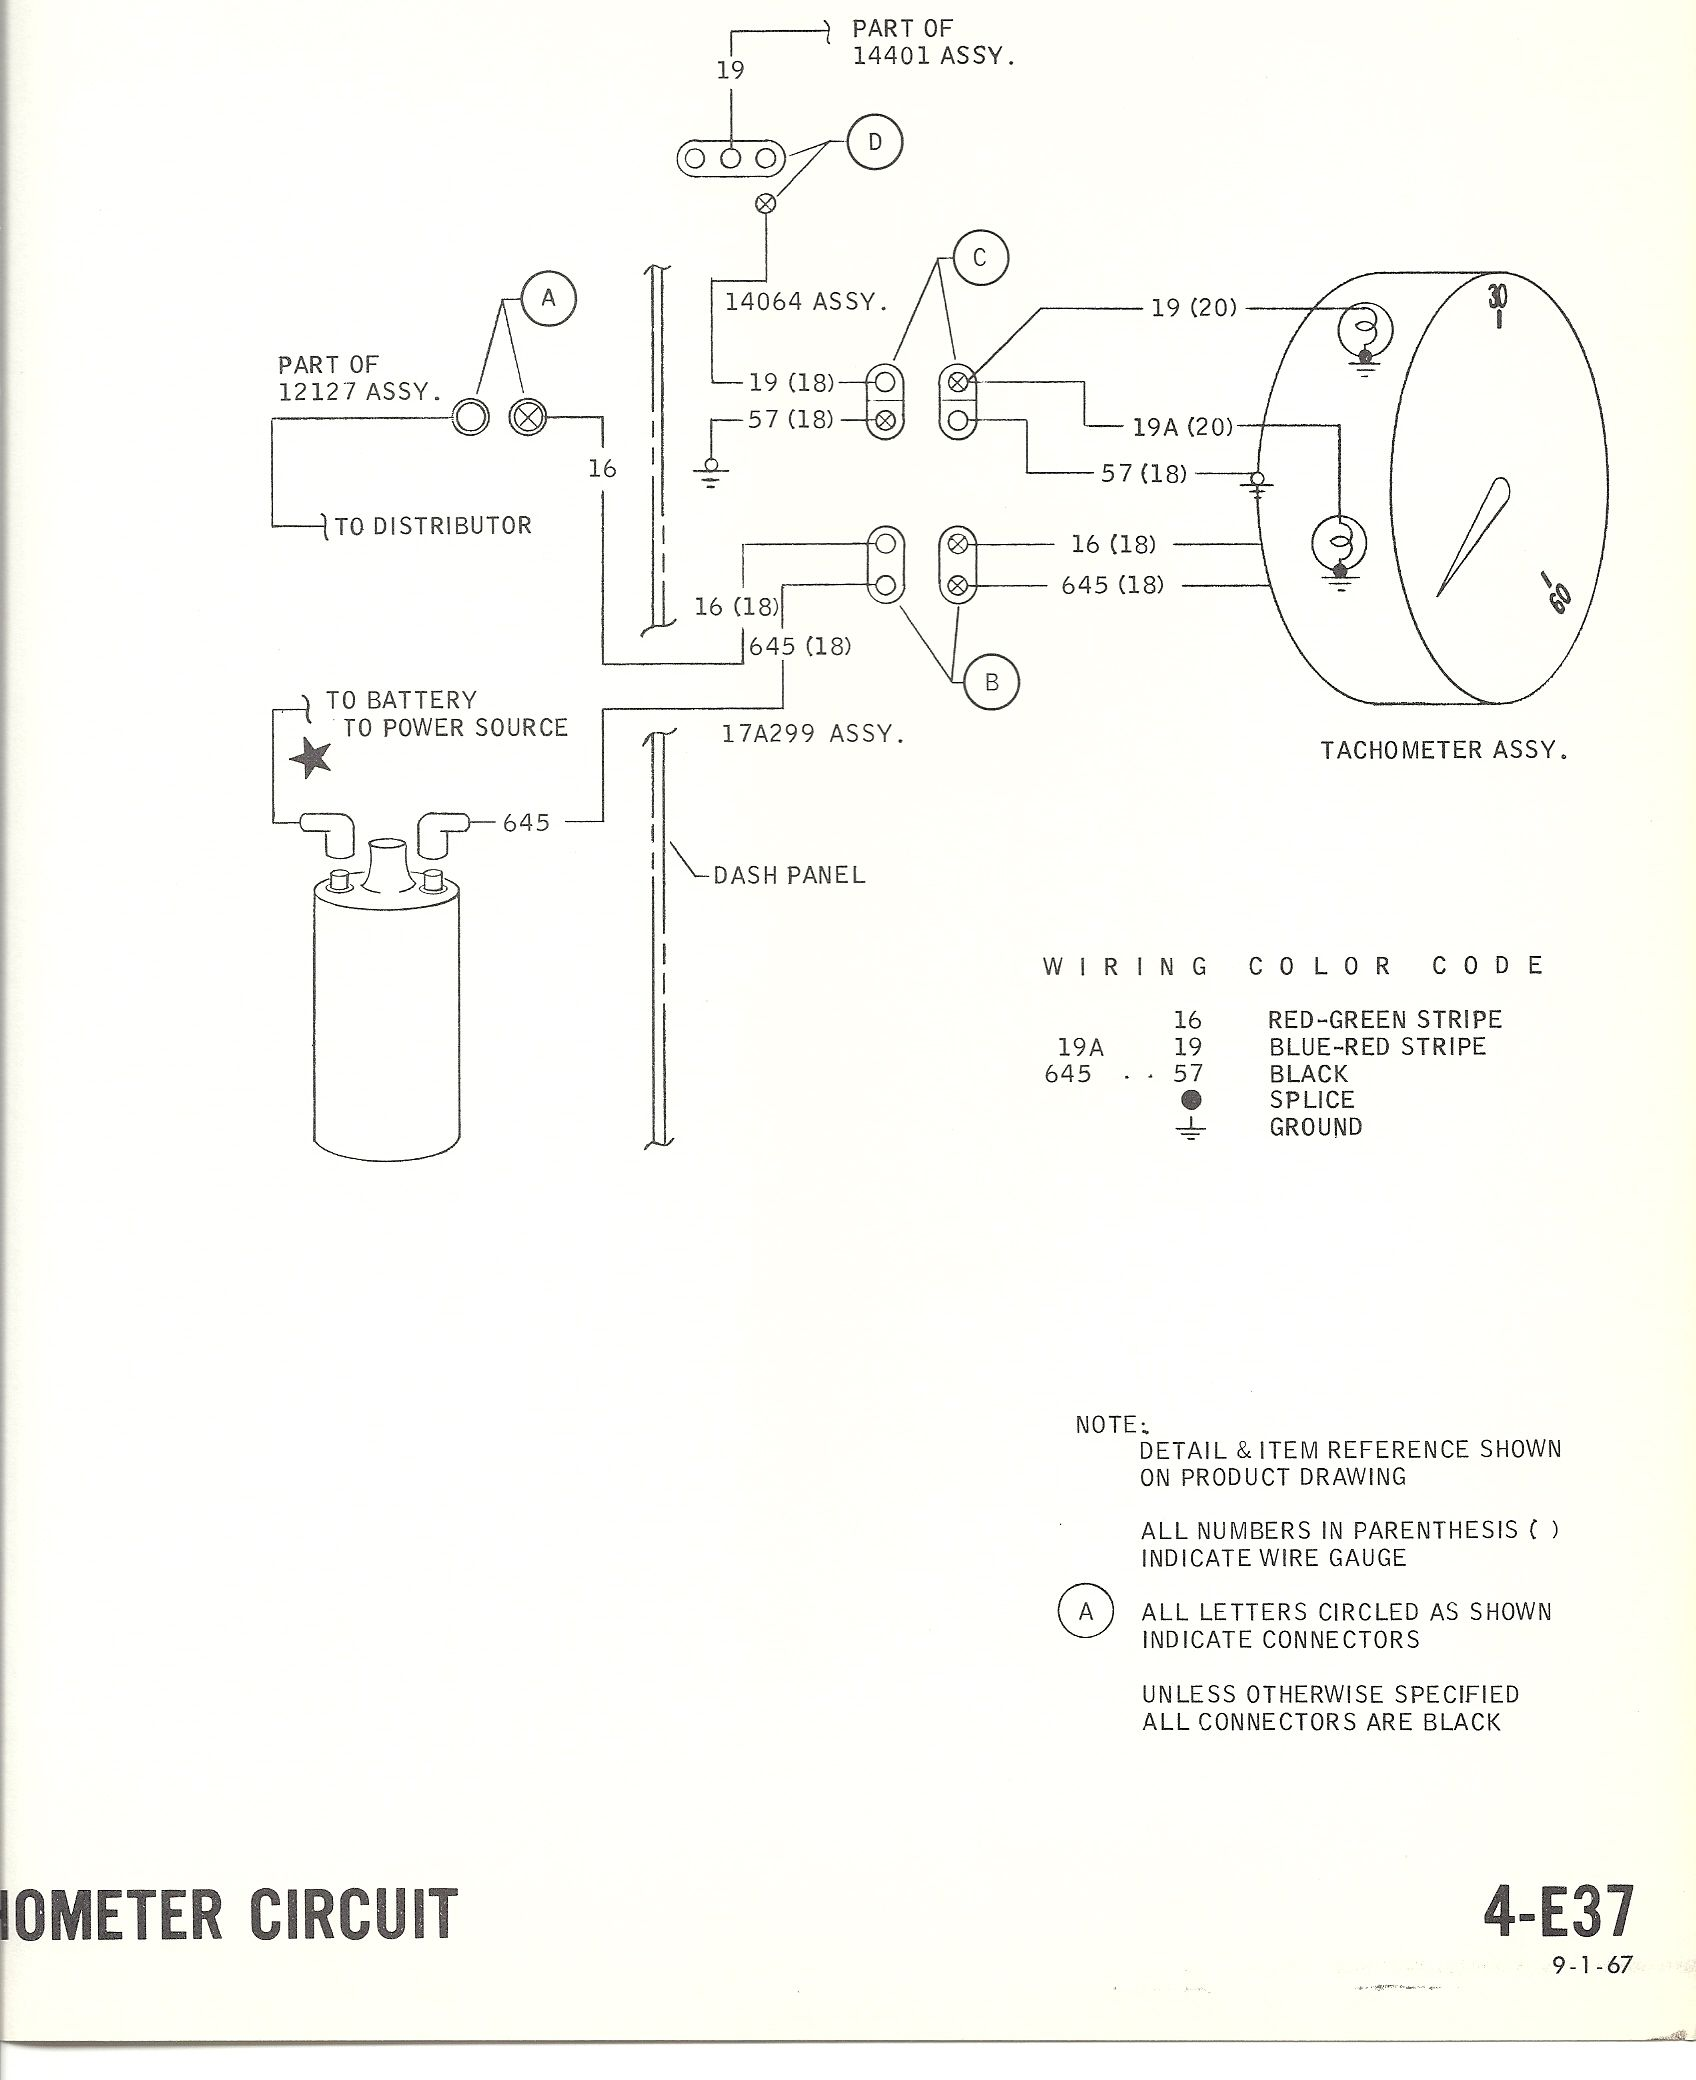 2b2f8e488a4c6a6b870c00f5af30de6c 1967 mustang wiring to tachometer 1968 mustang wiring how to wire a tachometer diagrams at mifinder.co